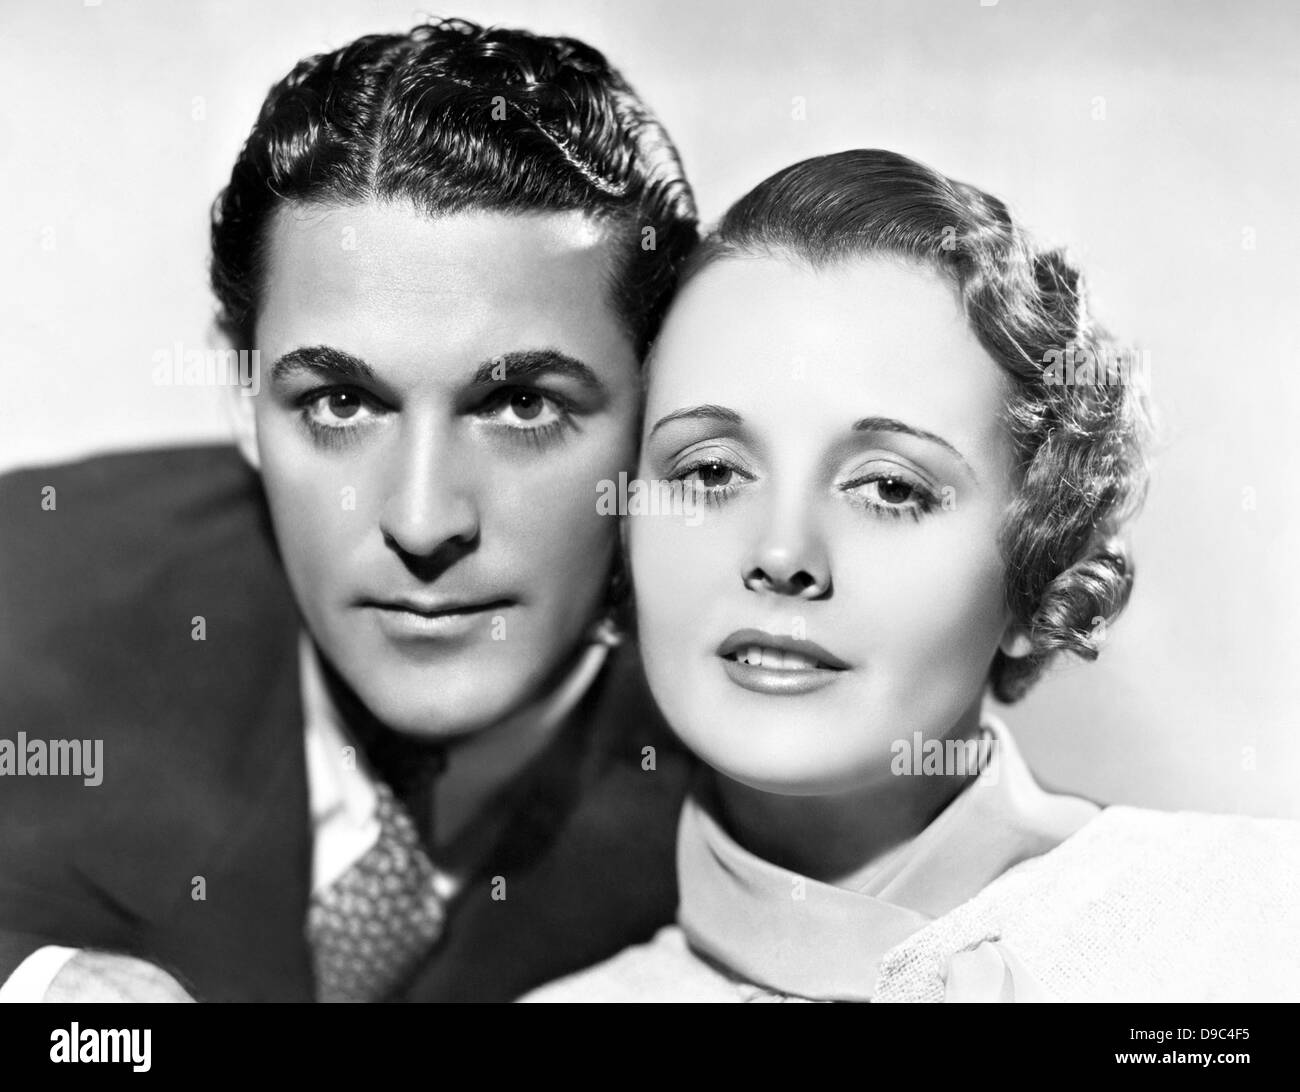 LADY FROM NOWHERE 1936 Columbia Pictures film with Mary Astor and Charles Quigley - Stock Image